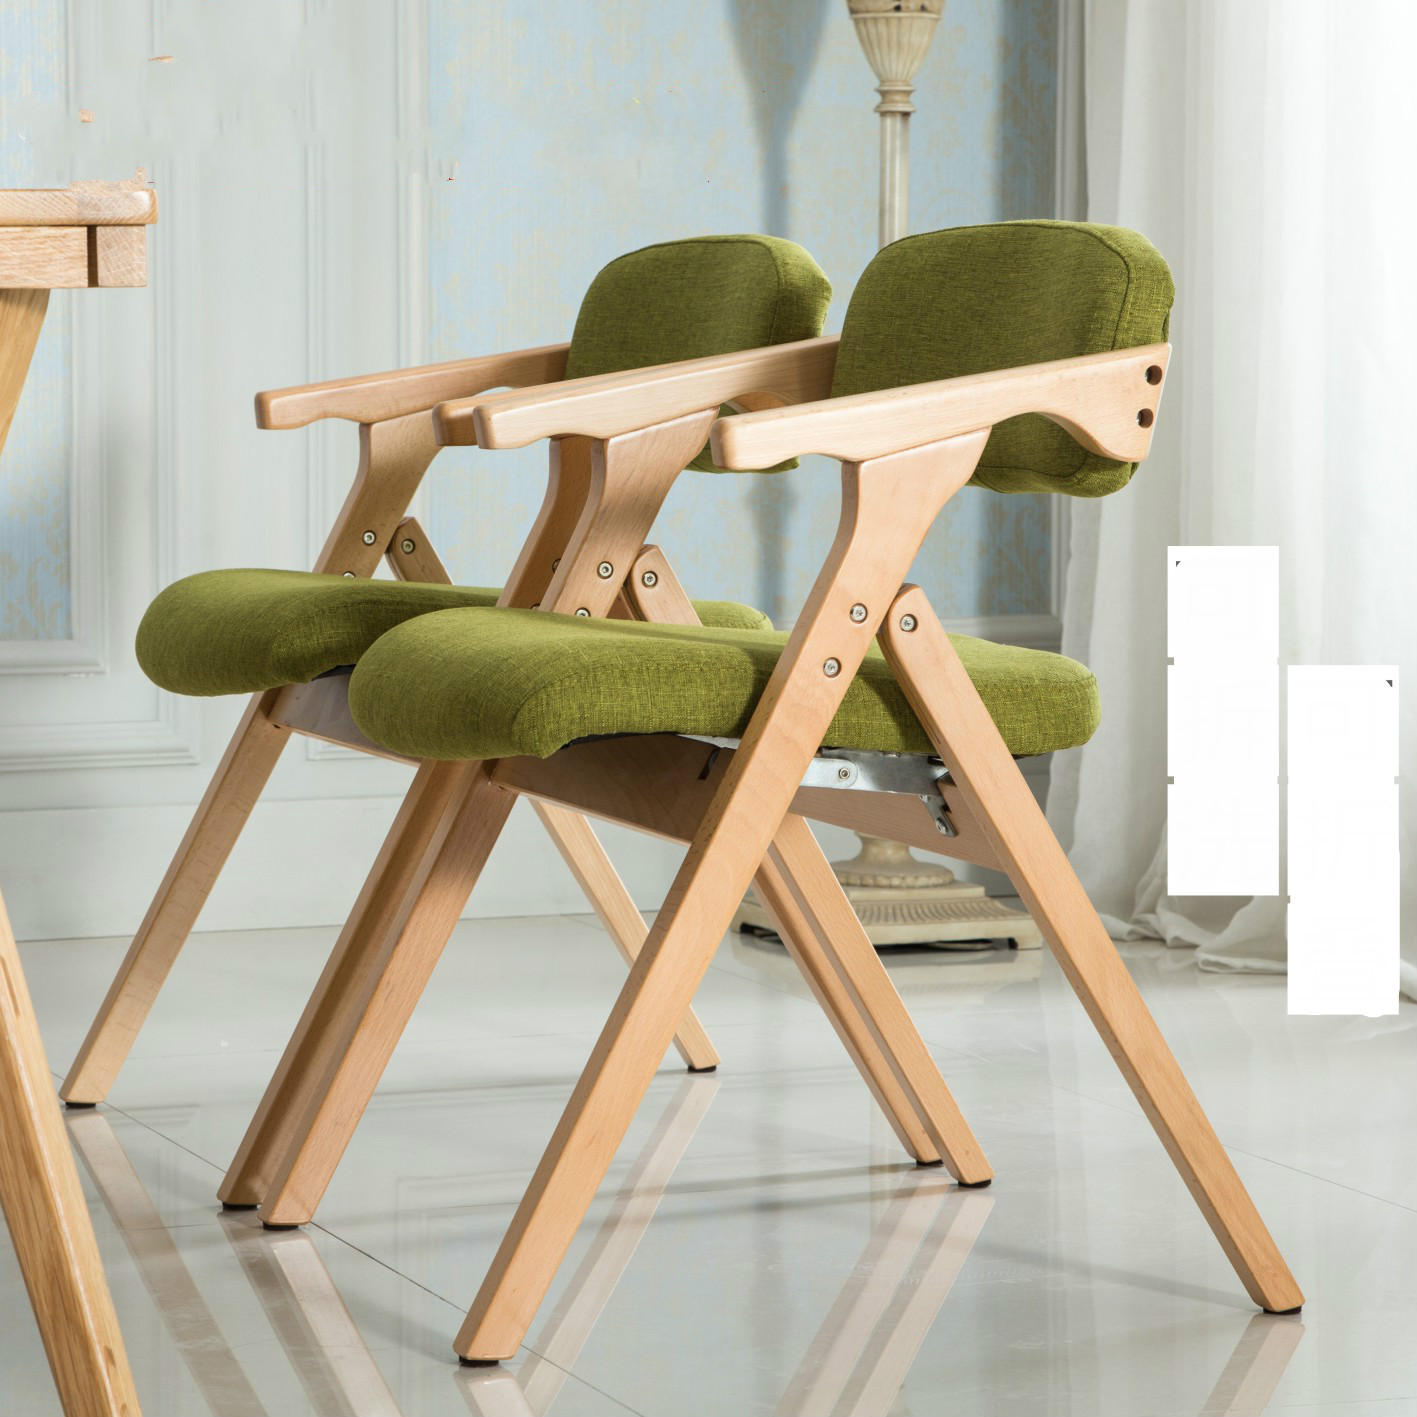 Nordic chair woodmensal modern minimalist folding chair for Chaise longue en bois pliante